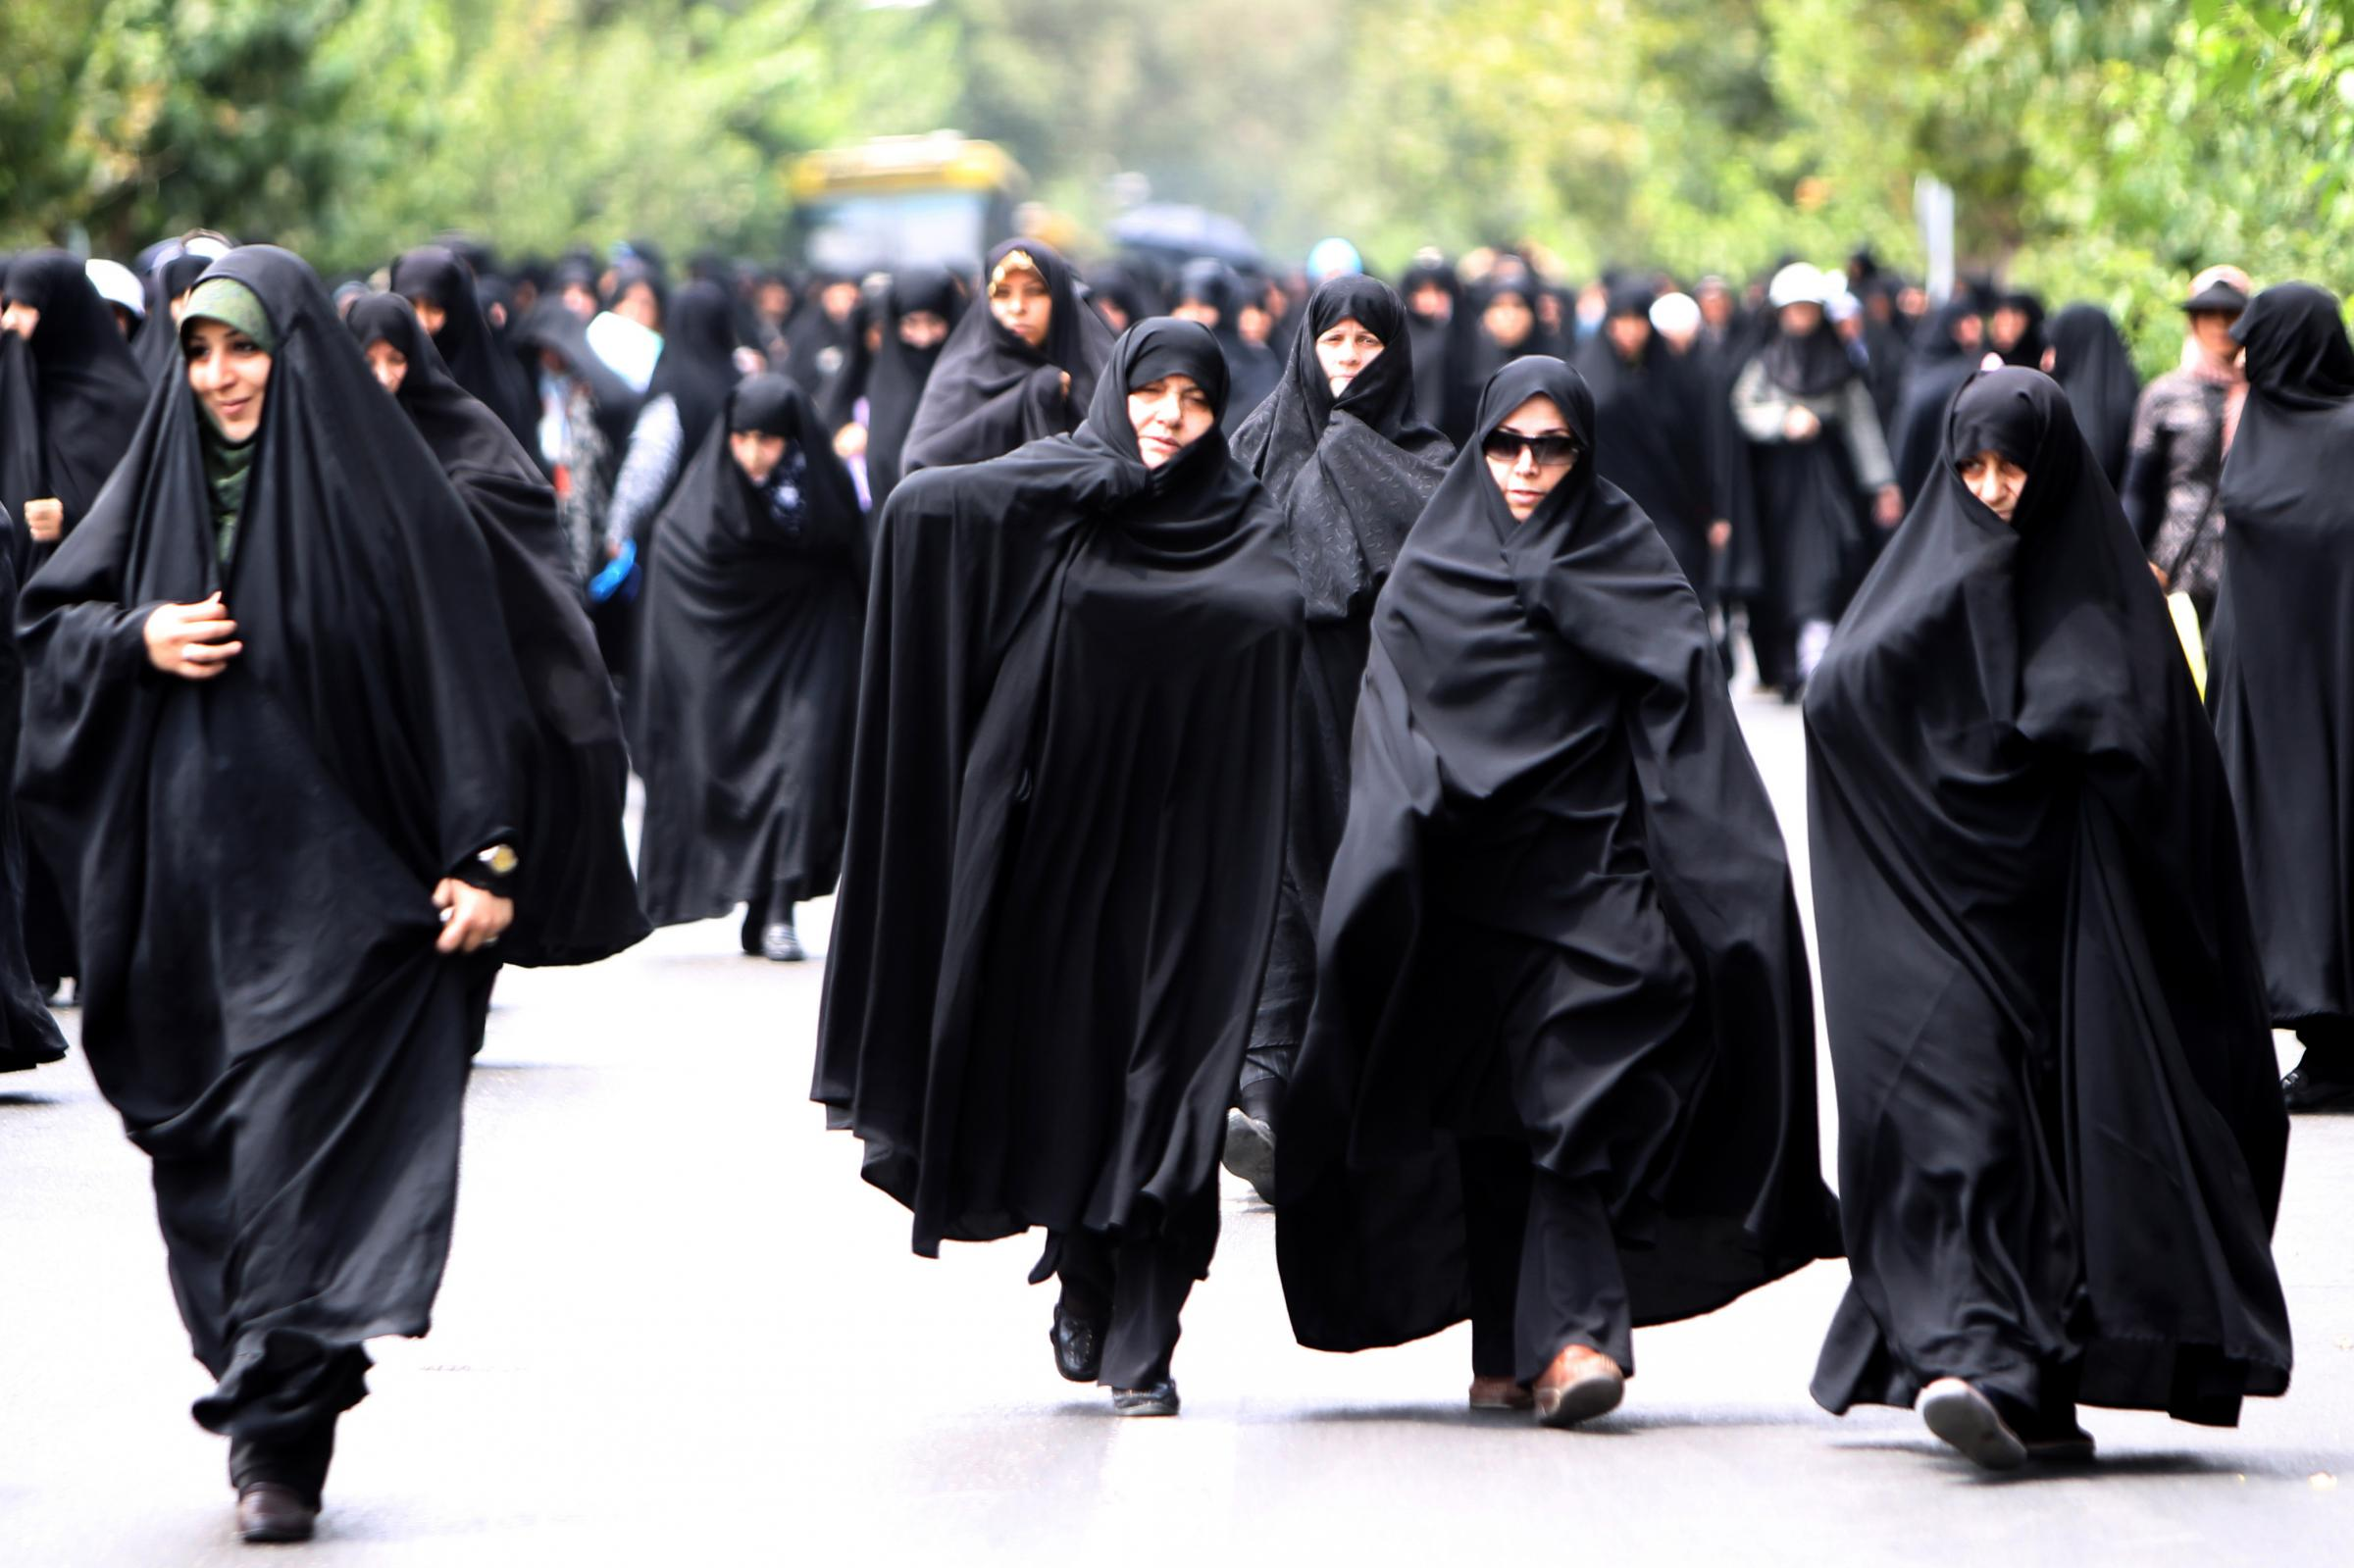 muslim single women in willow street Women in iran discusses the  society of progressive muslim women:  and this sentiment was manifested in street demonstrations where many women from the .